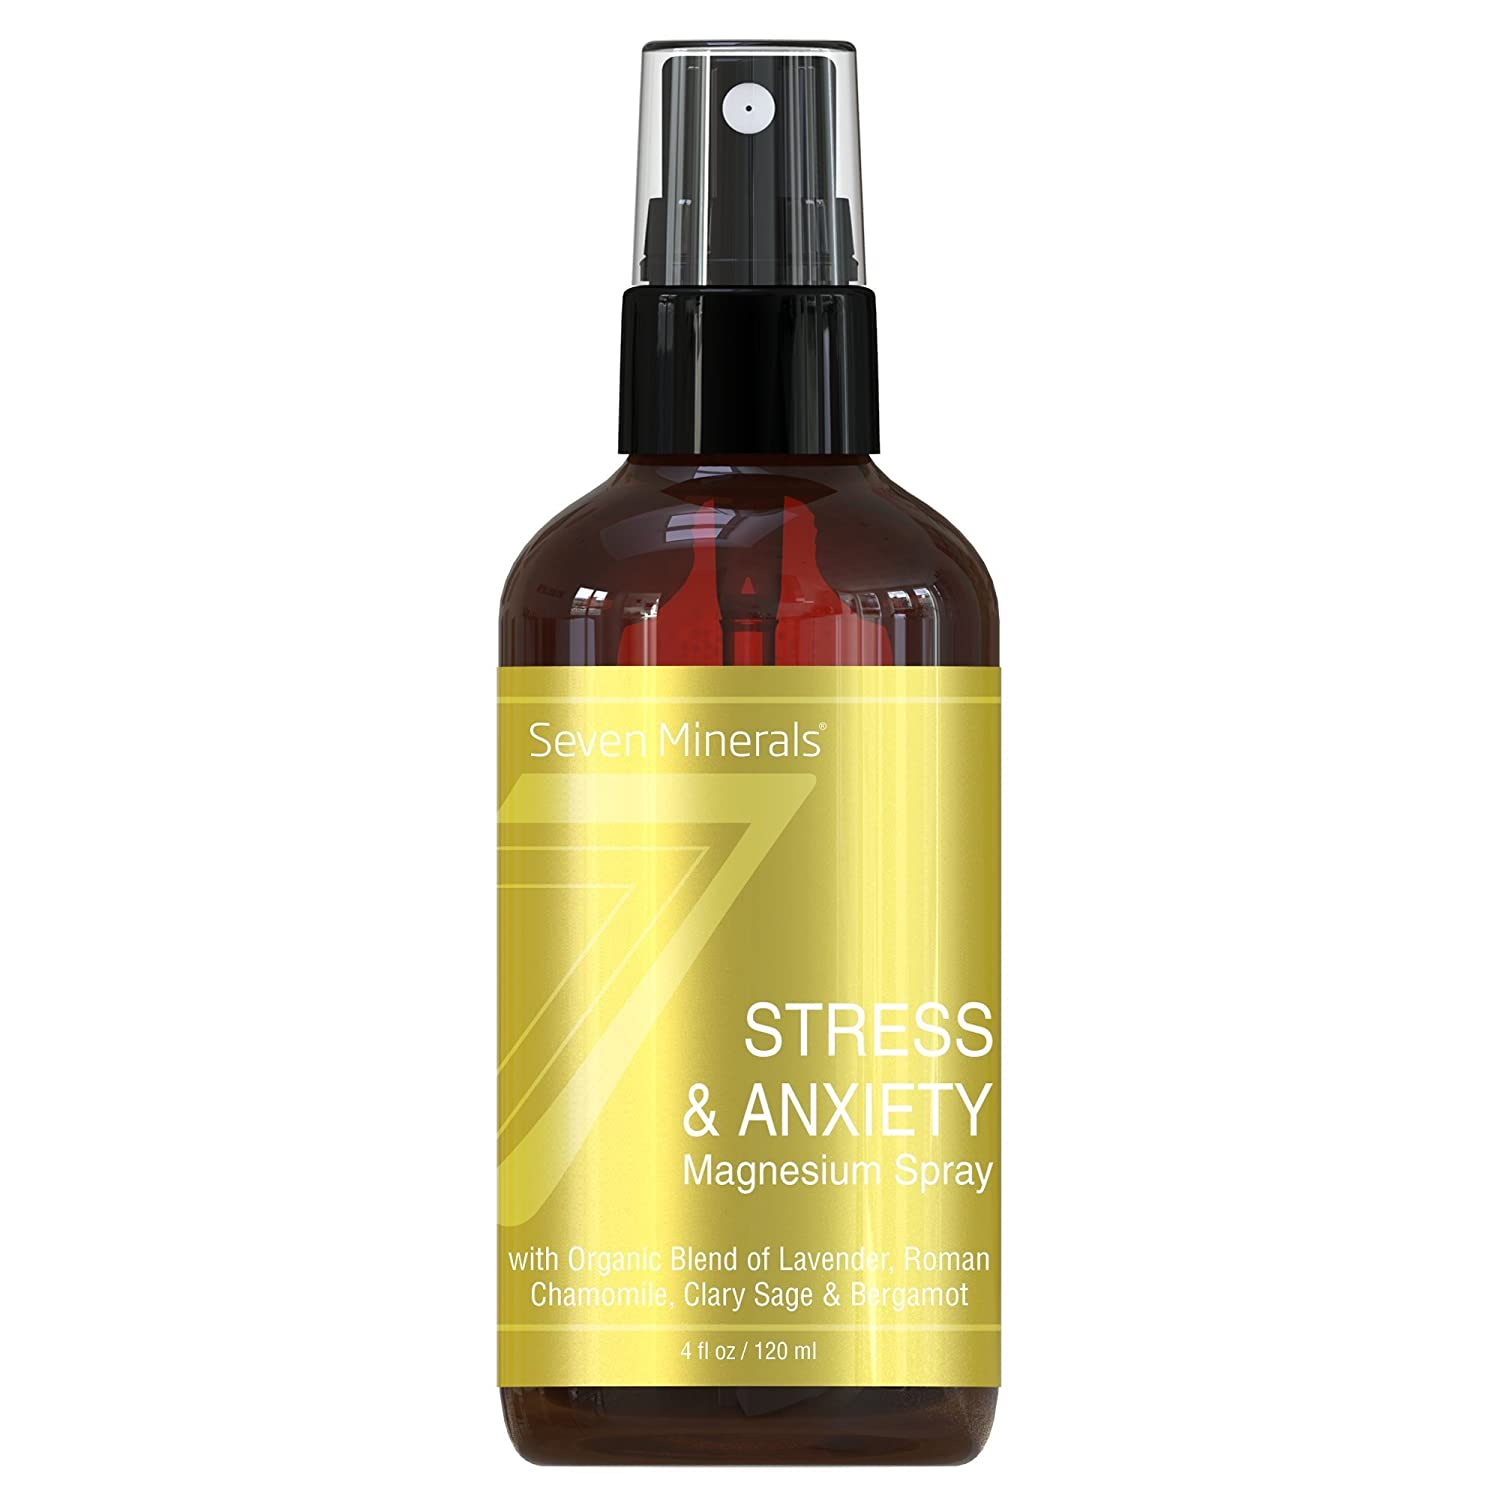 Seven Minerals Stress & Anxiety Magnesium Spray with Organic Blend of Lavender, Roman Chamomile, Clary Sage & Bergamot - 4 fl oz SM-786